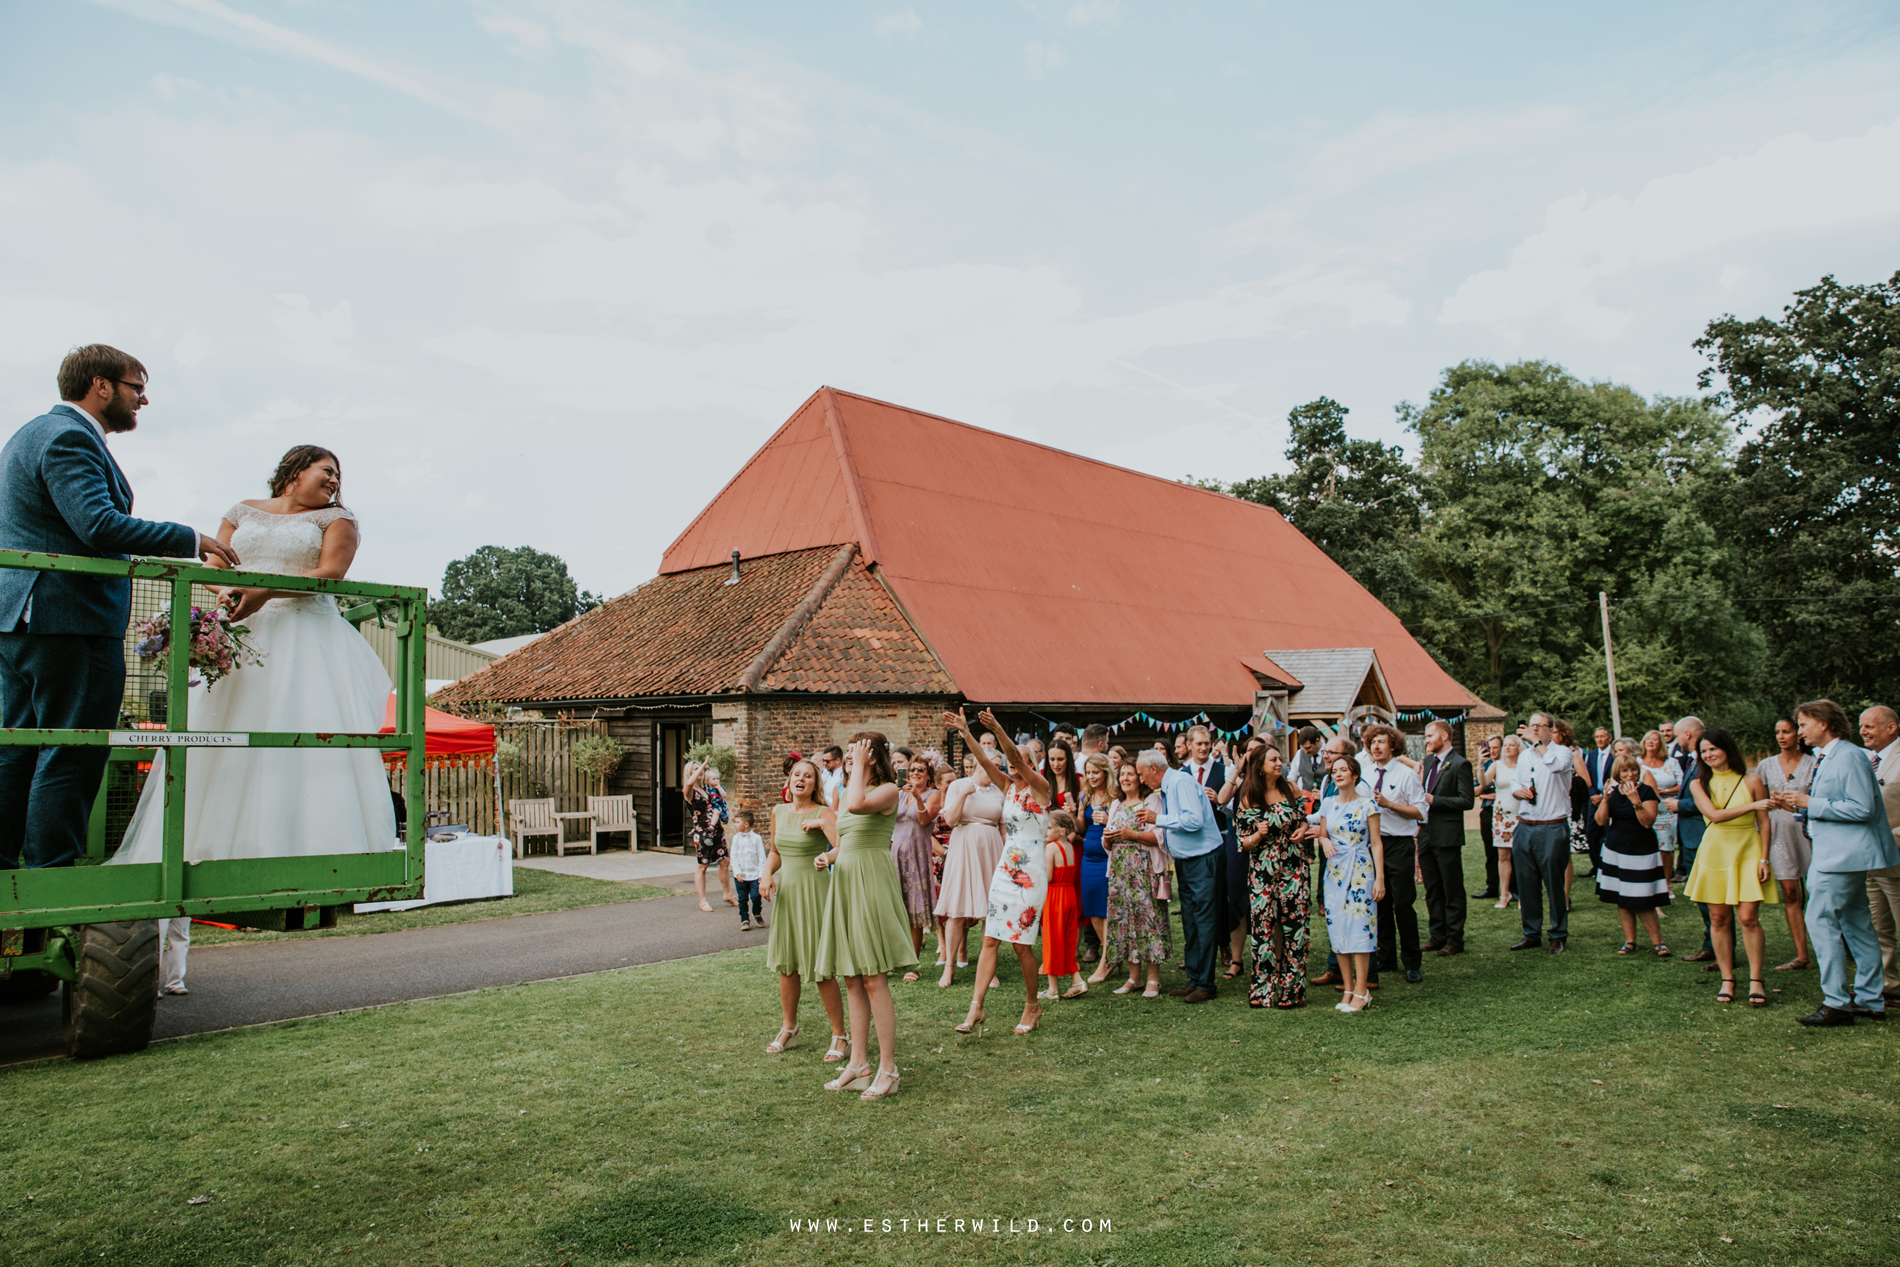 The_Red_Barn_Wedding_Kings_Lynn_Norfolk_IMG_2314.jpg